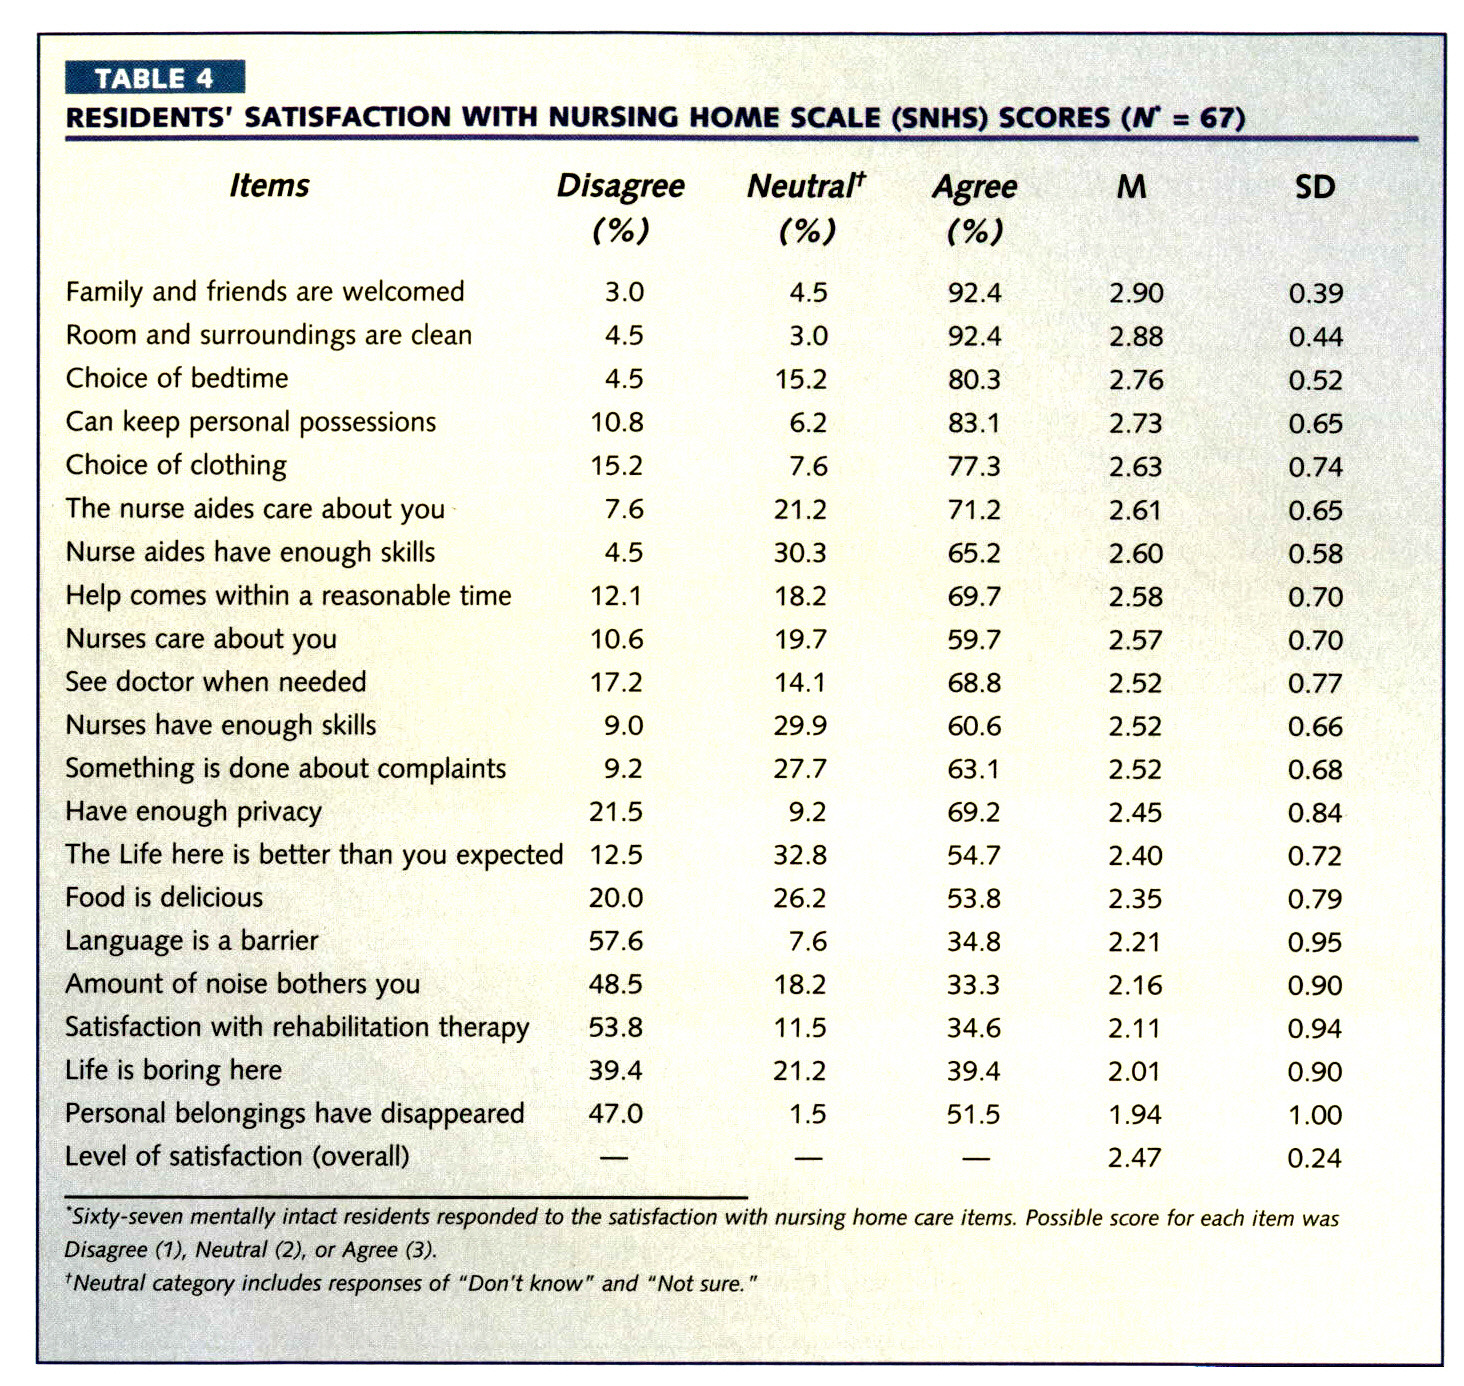 TABLE 4RESIDENTS' SATISFACTION WITH NURSING HOME SCALE (SNHS) SCORES (AT = 67)